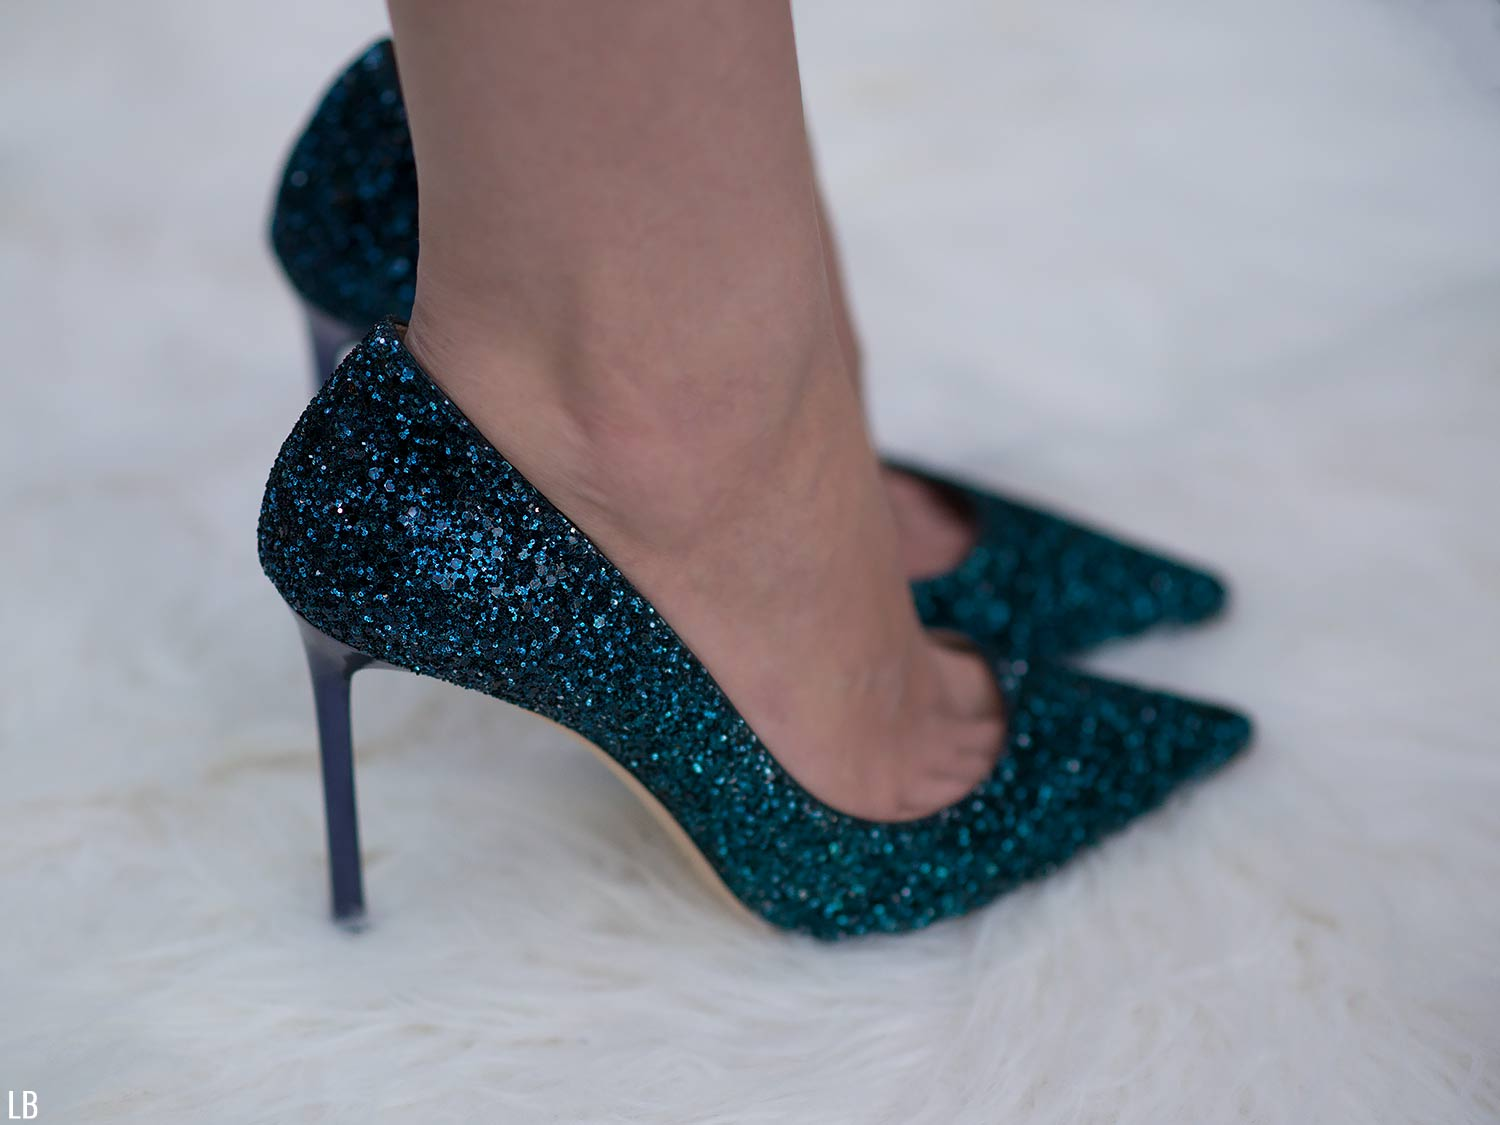 877eee47acc9 Jimmy Choo Romy 100 Glitter Shoes Review